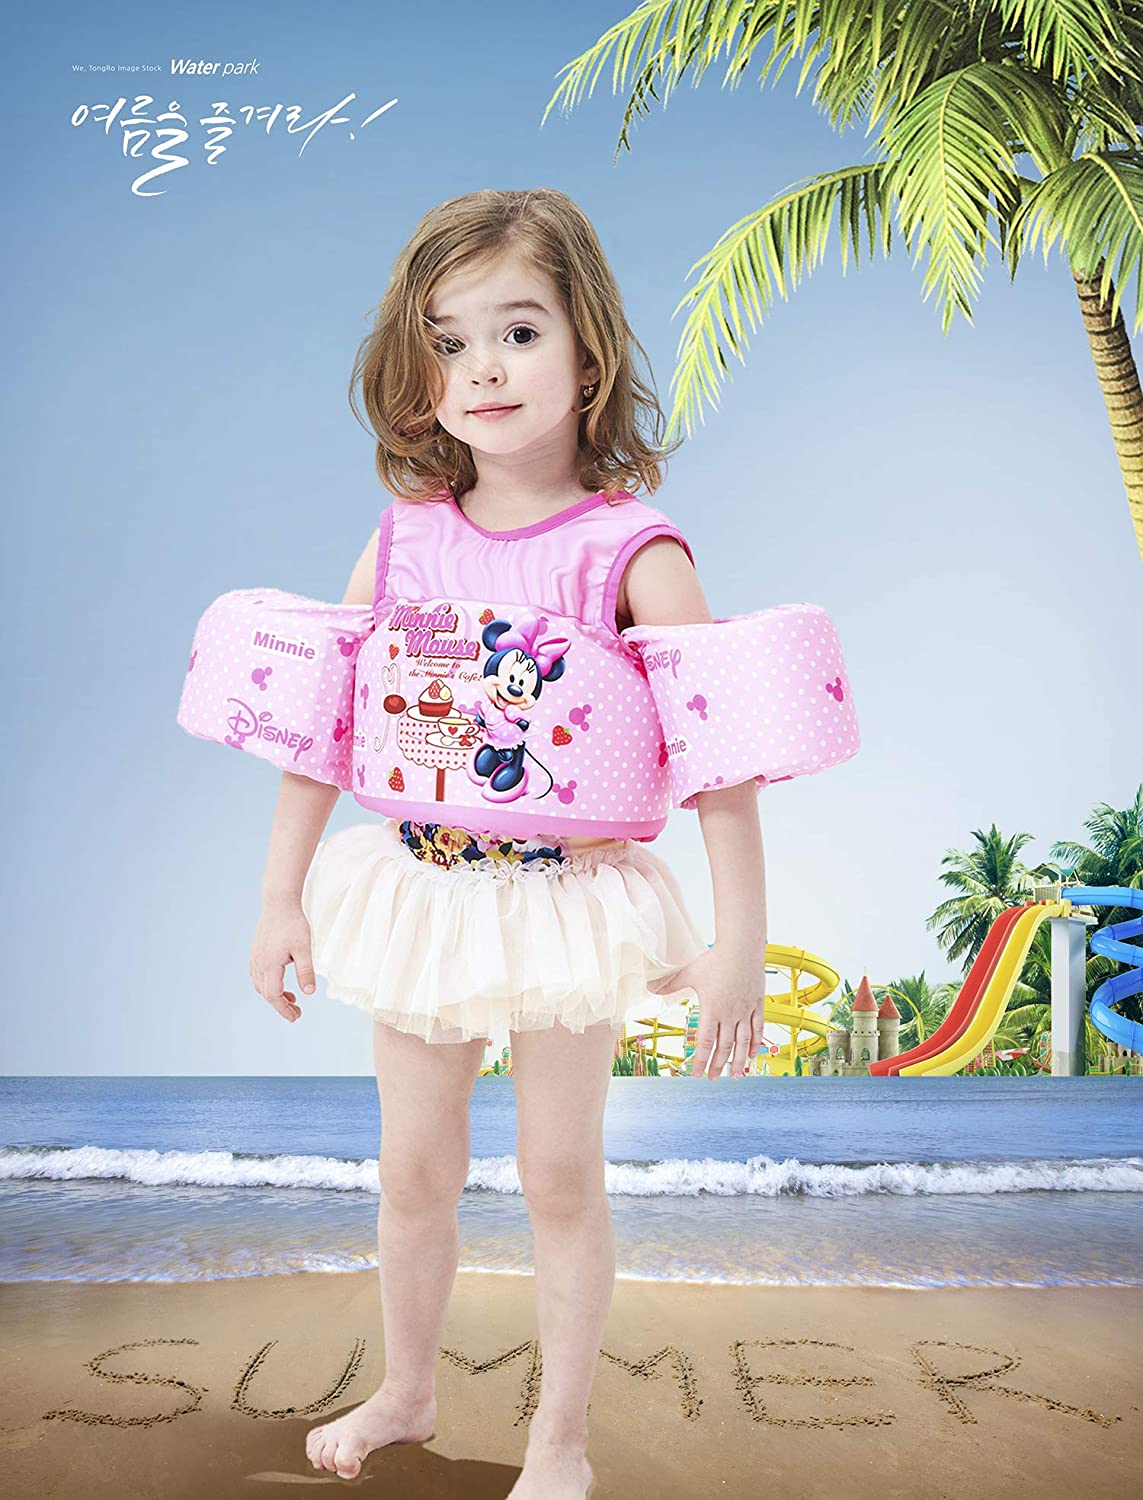 ANAN BABY Swim Vest//Toddler Life Jackets with Floaties for Kids 30-55 lbs